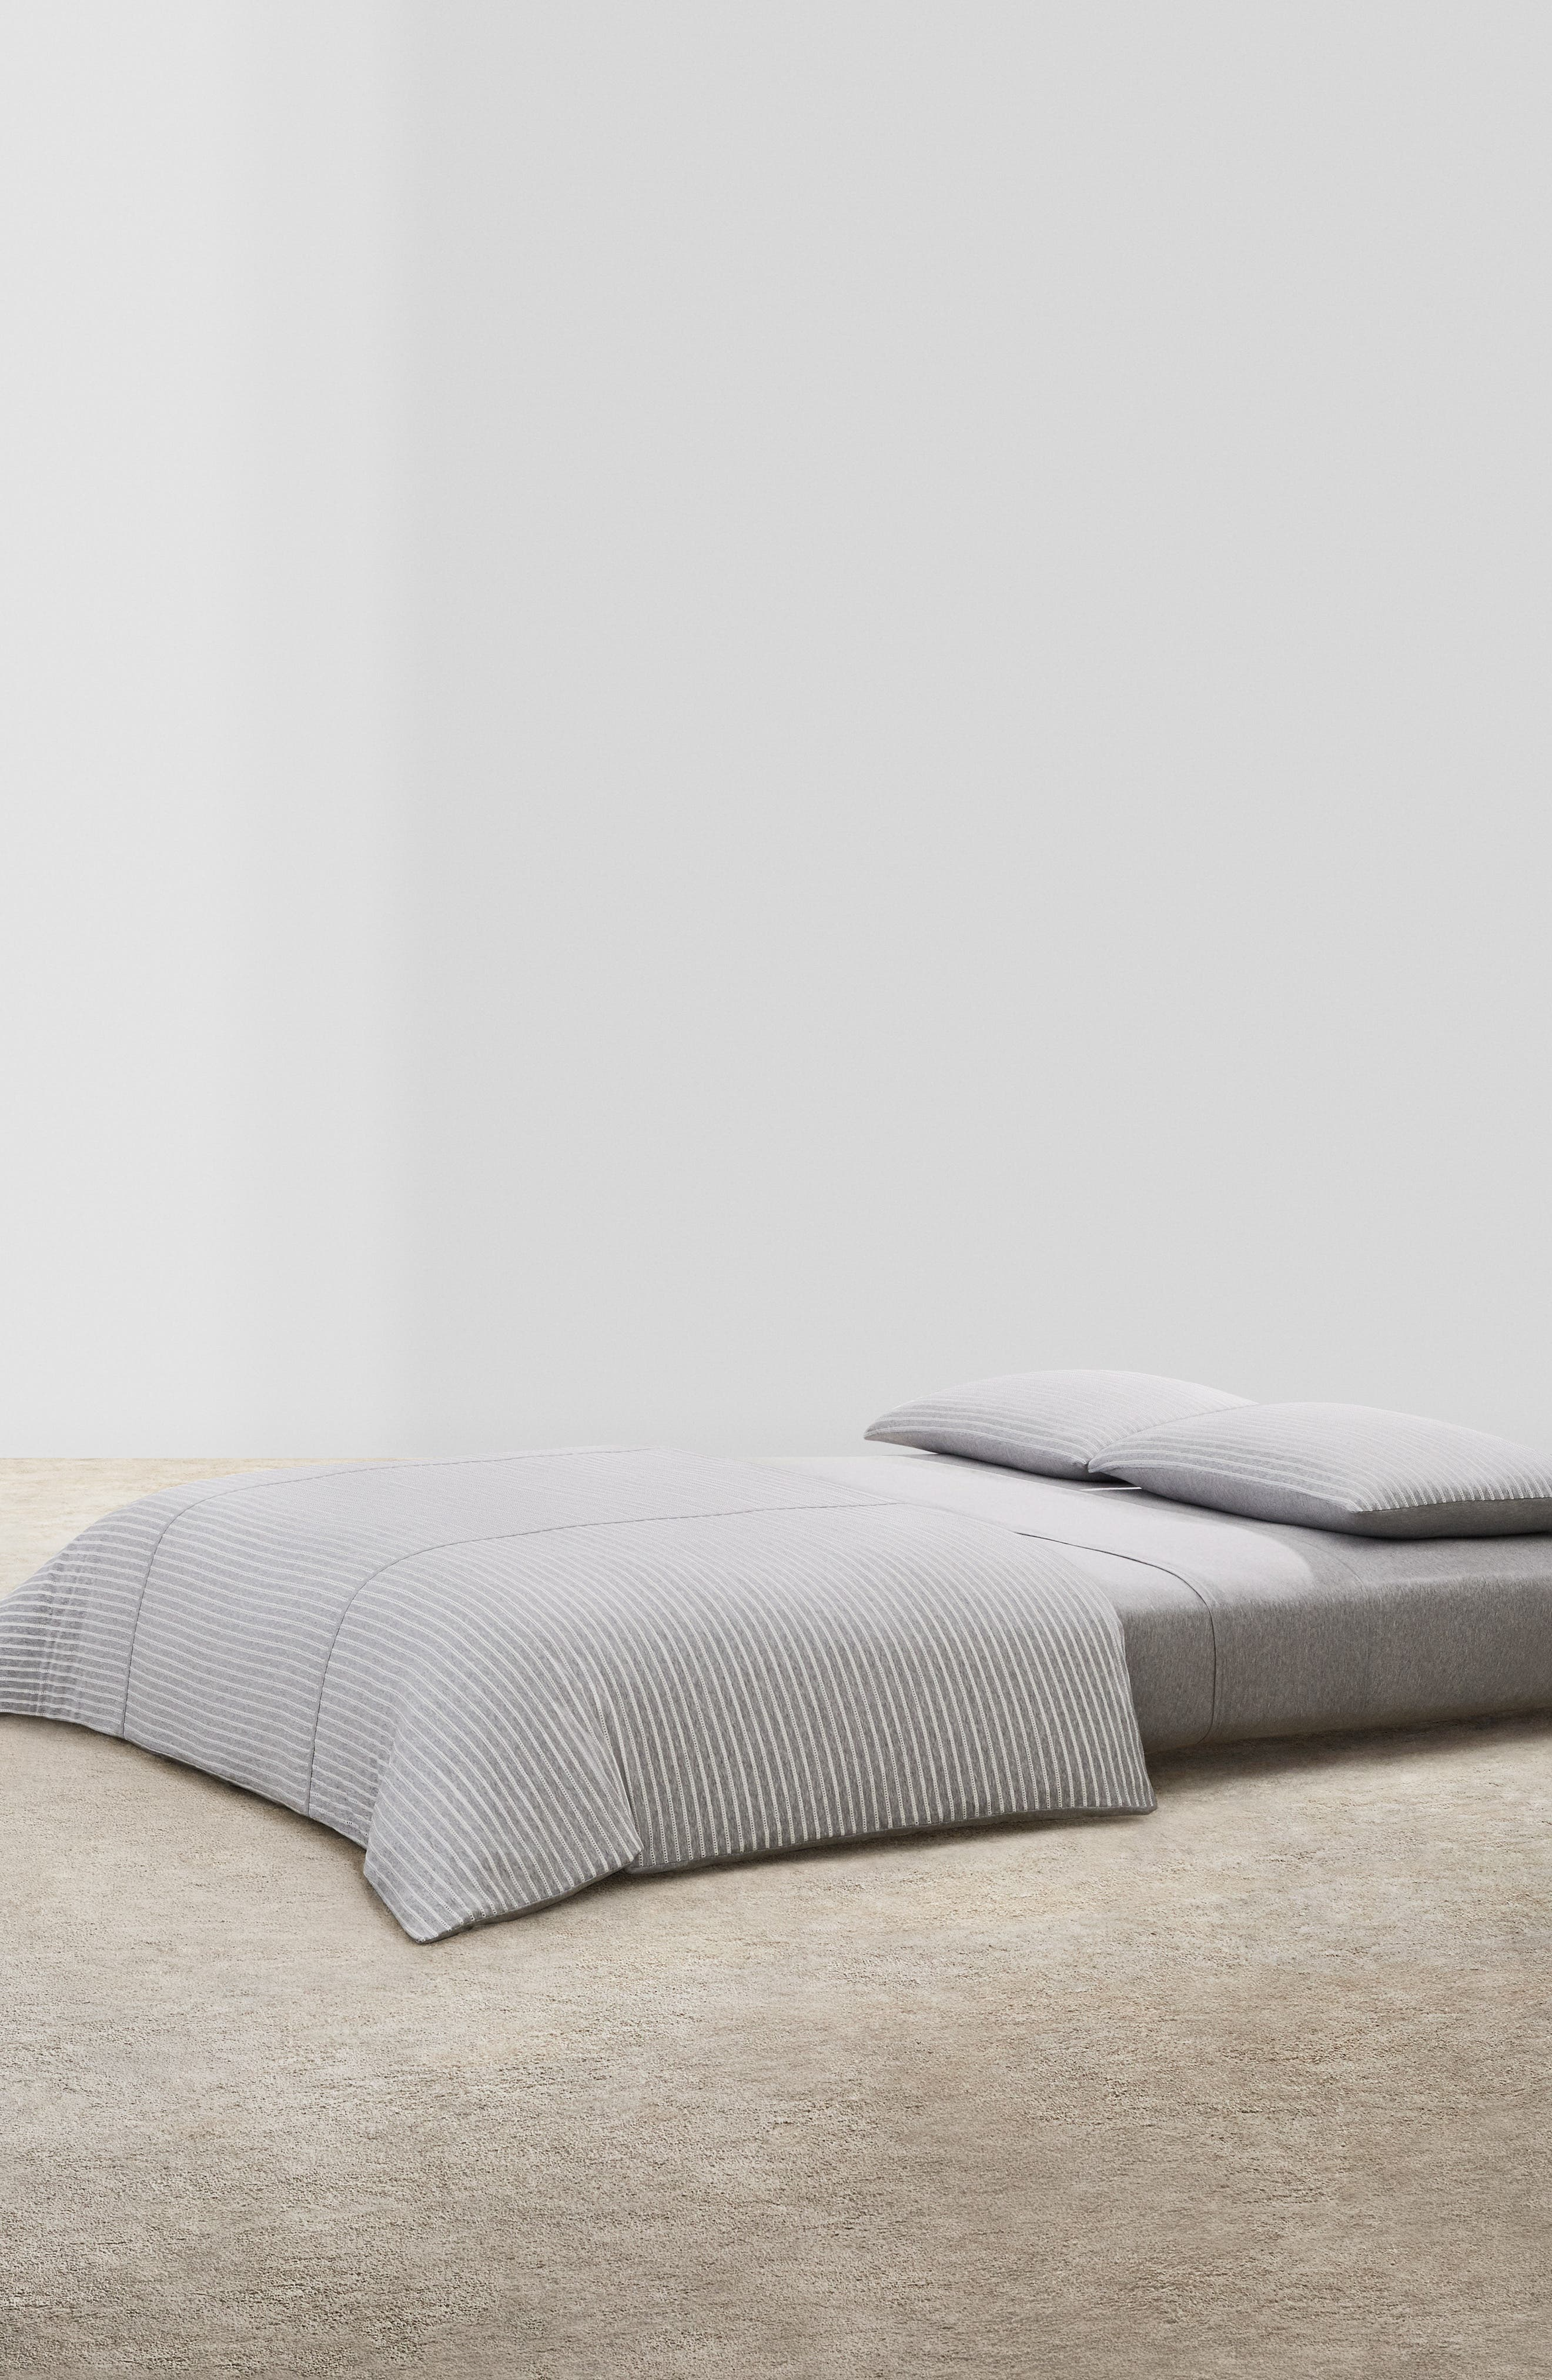 CALVIN KLEIN HOME,                             Lennox Duvet Cover,                             Main thumbnail 1, color,                             HEATHER GREY/ CREAM